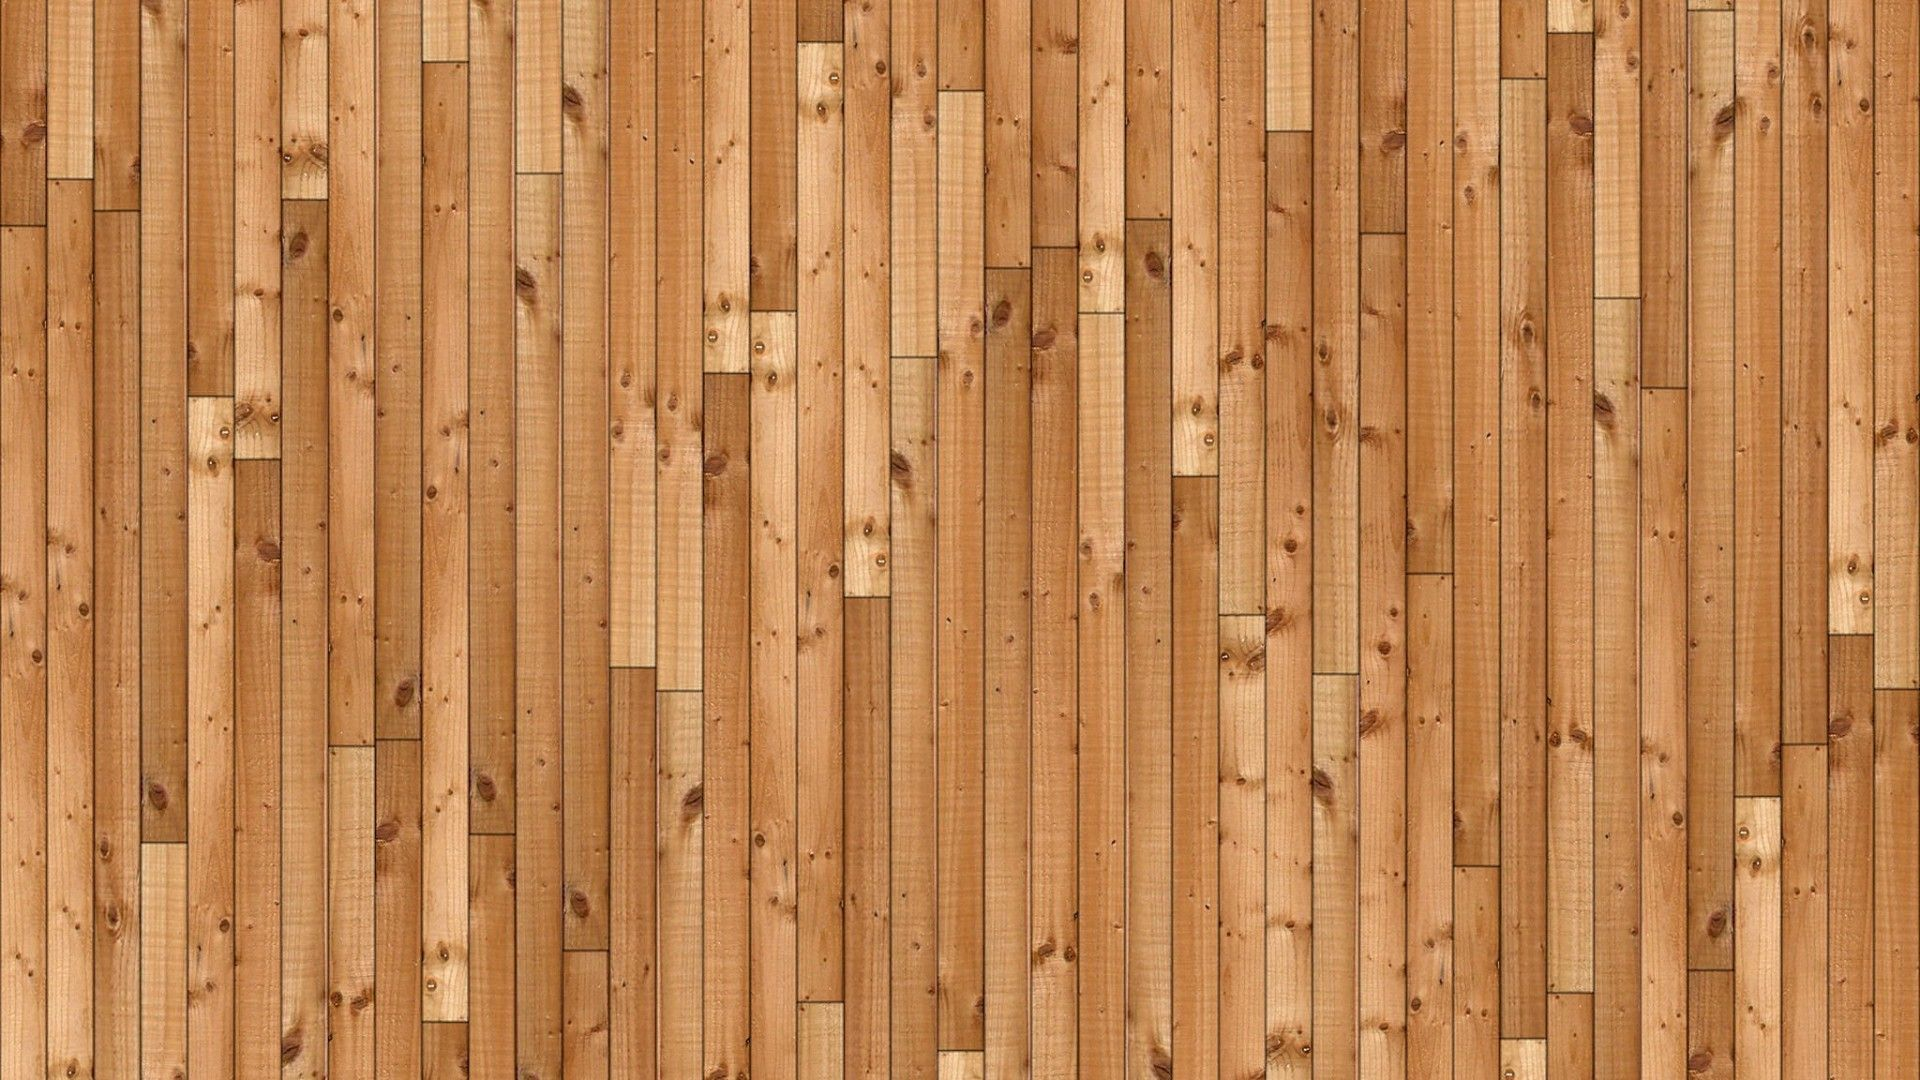 Wallpaper Hd Wood Background